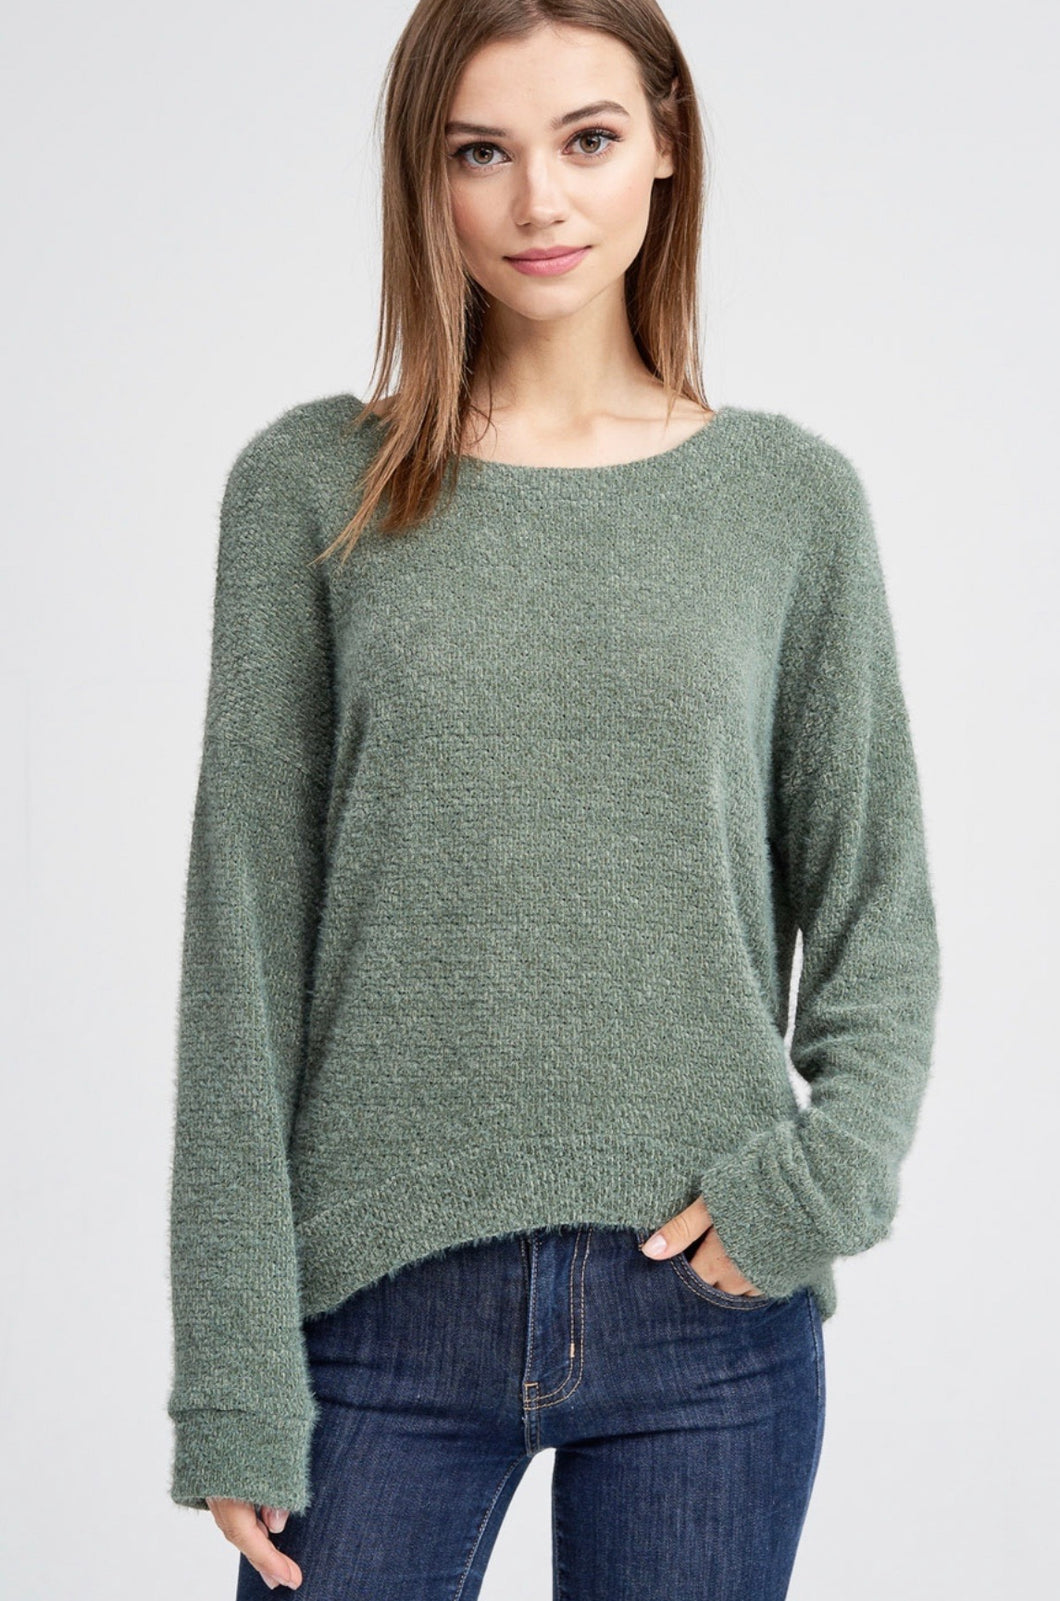 891 - Olive Anything but Basic Sweater